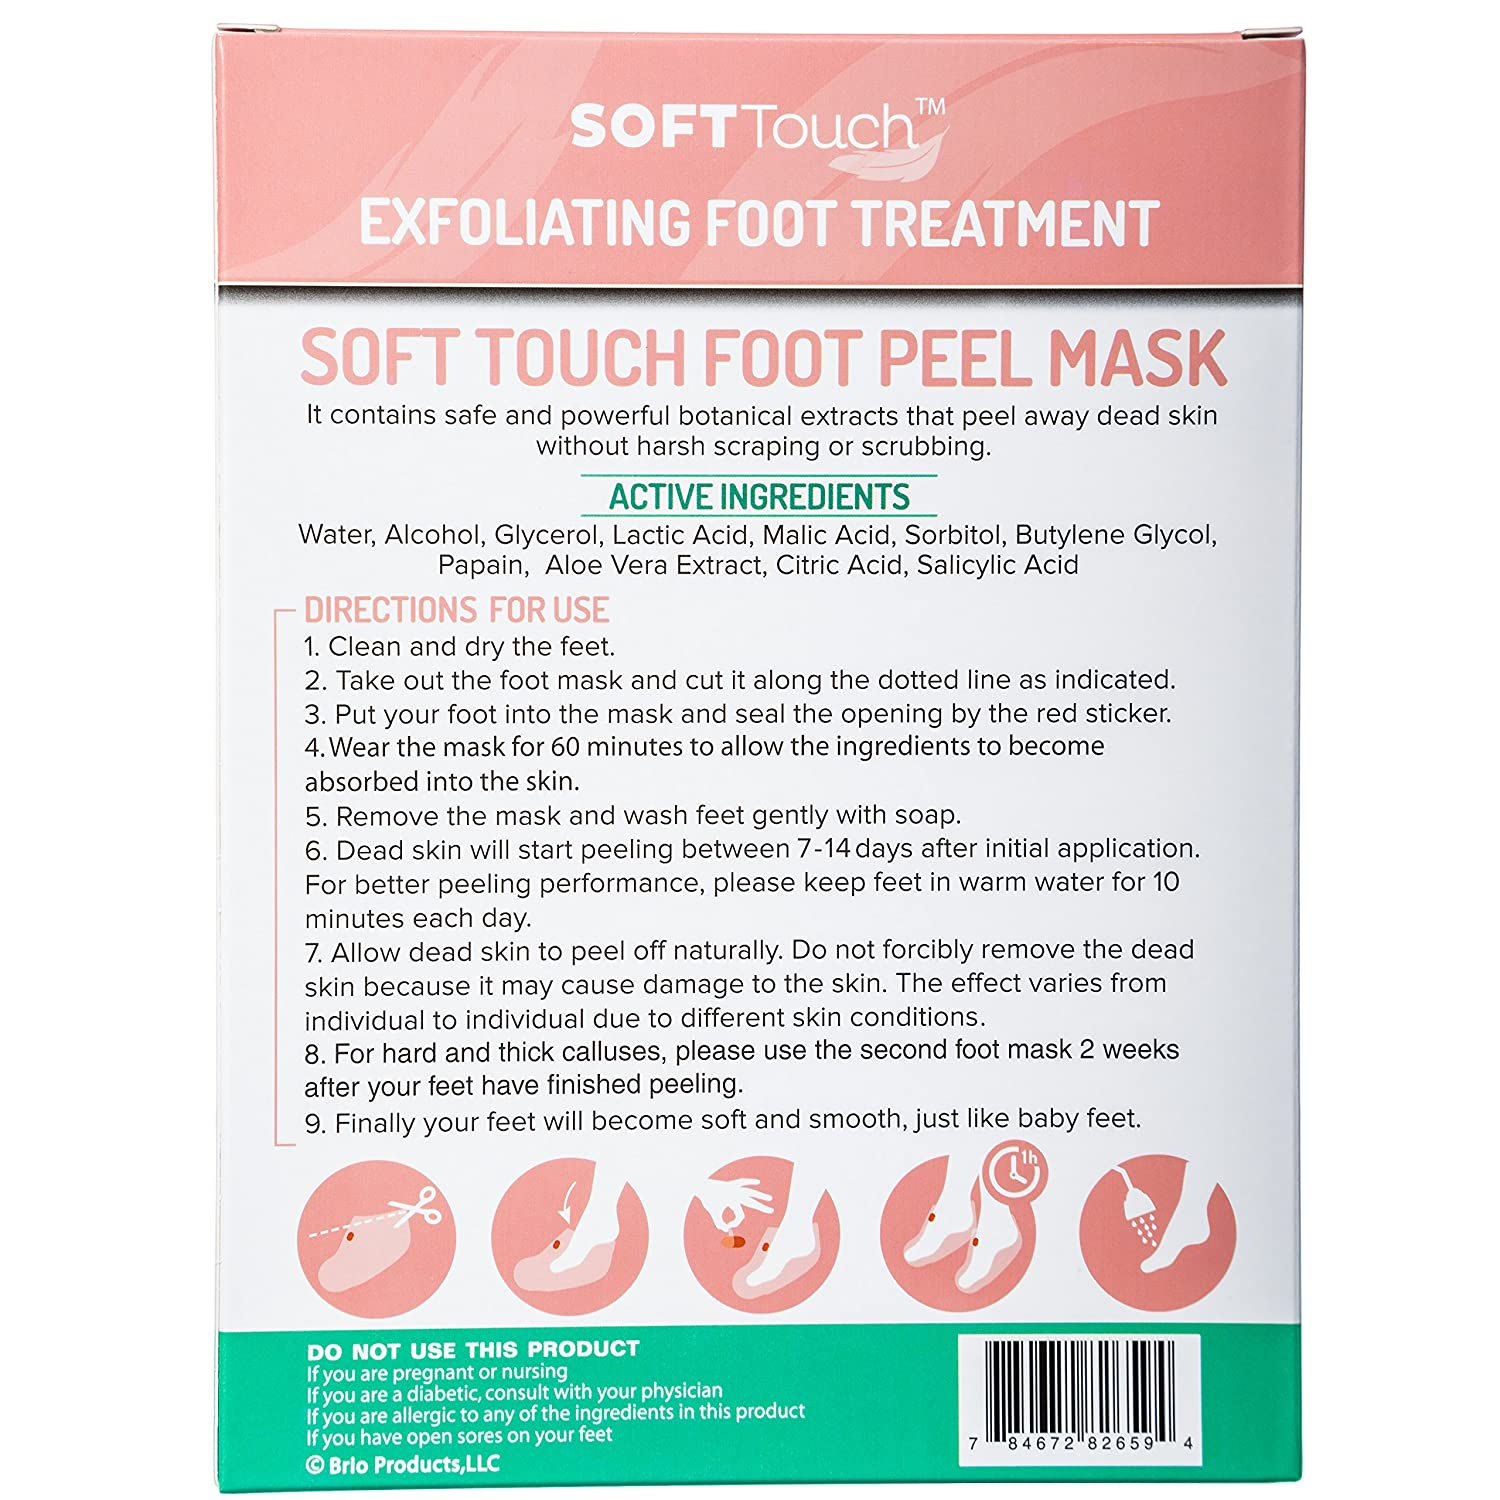 Soft Touch Foot Peel Mask Exfoliating Callus Remover 2 Velvy Goats Milk Shower Cream Green Tea And Aloe Vera 250ml Pairs Per Box Health Personal Care